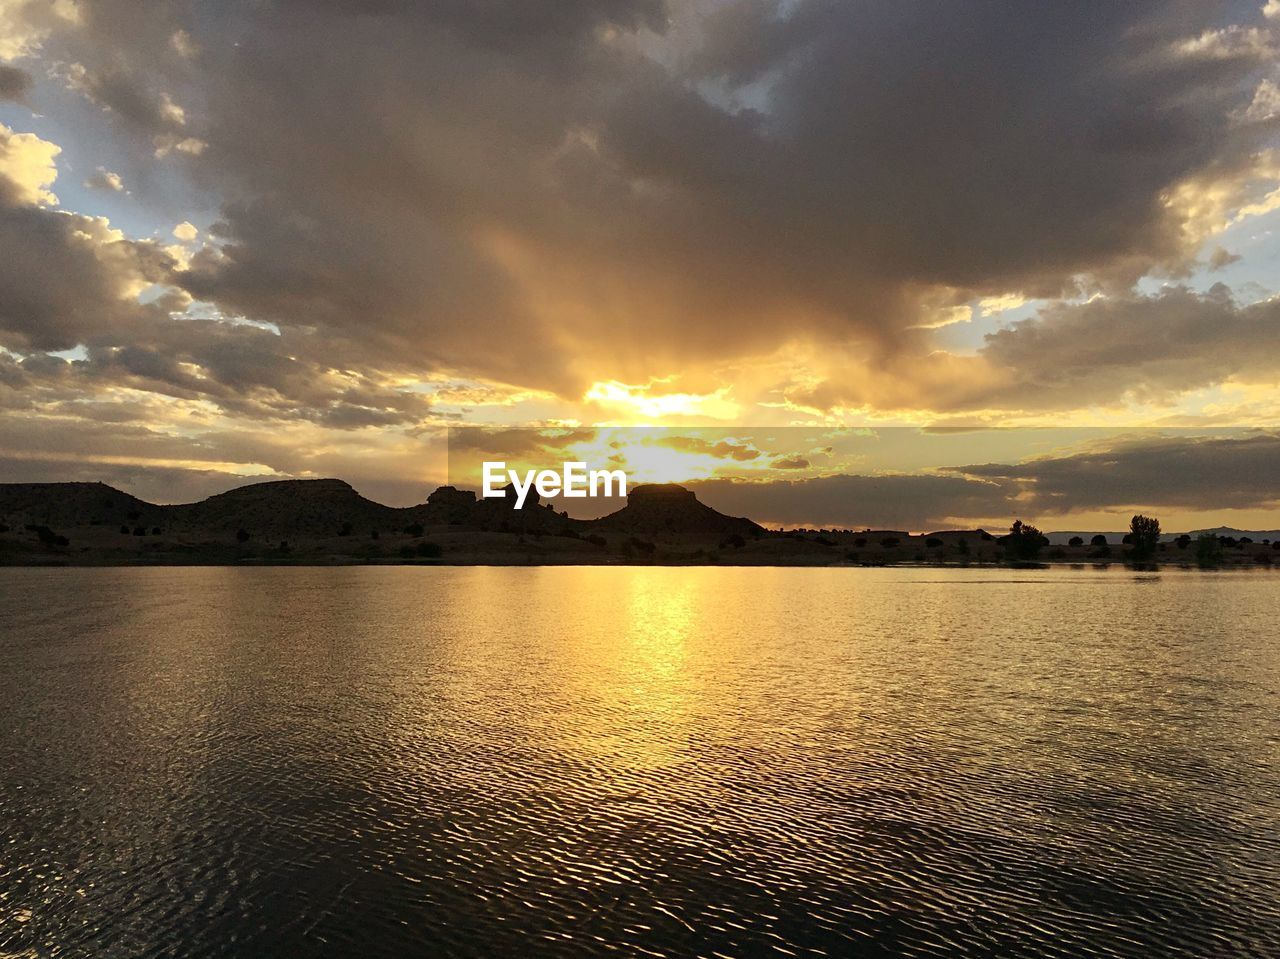 sky, cloud - sky, sunset, water, scenics - nature, beauty in nature, tranquil scene, waterfront, tranquility, sea, nature, no people, mountain, idyllic, sunlight, outdoors, orange color, reflection